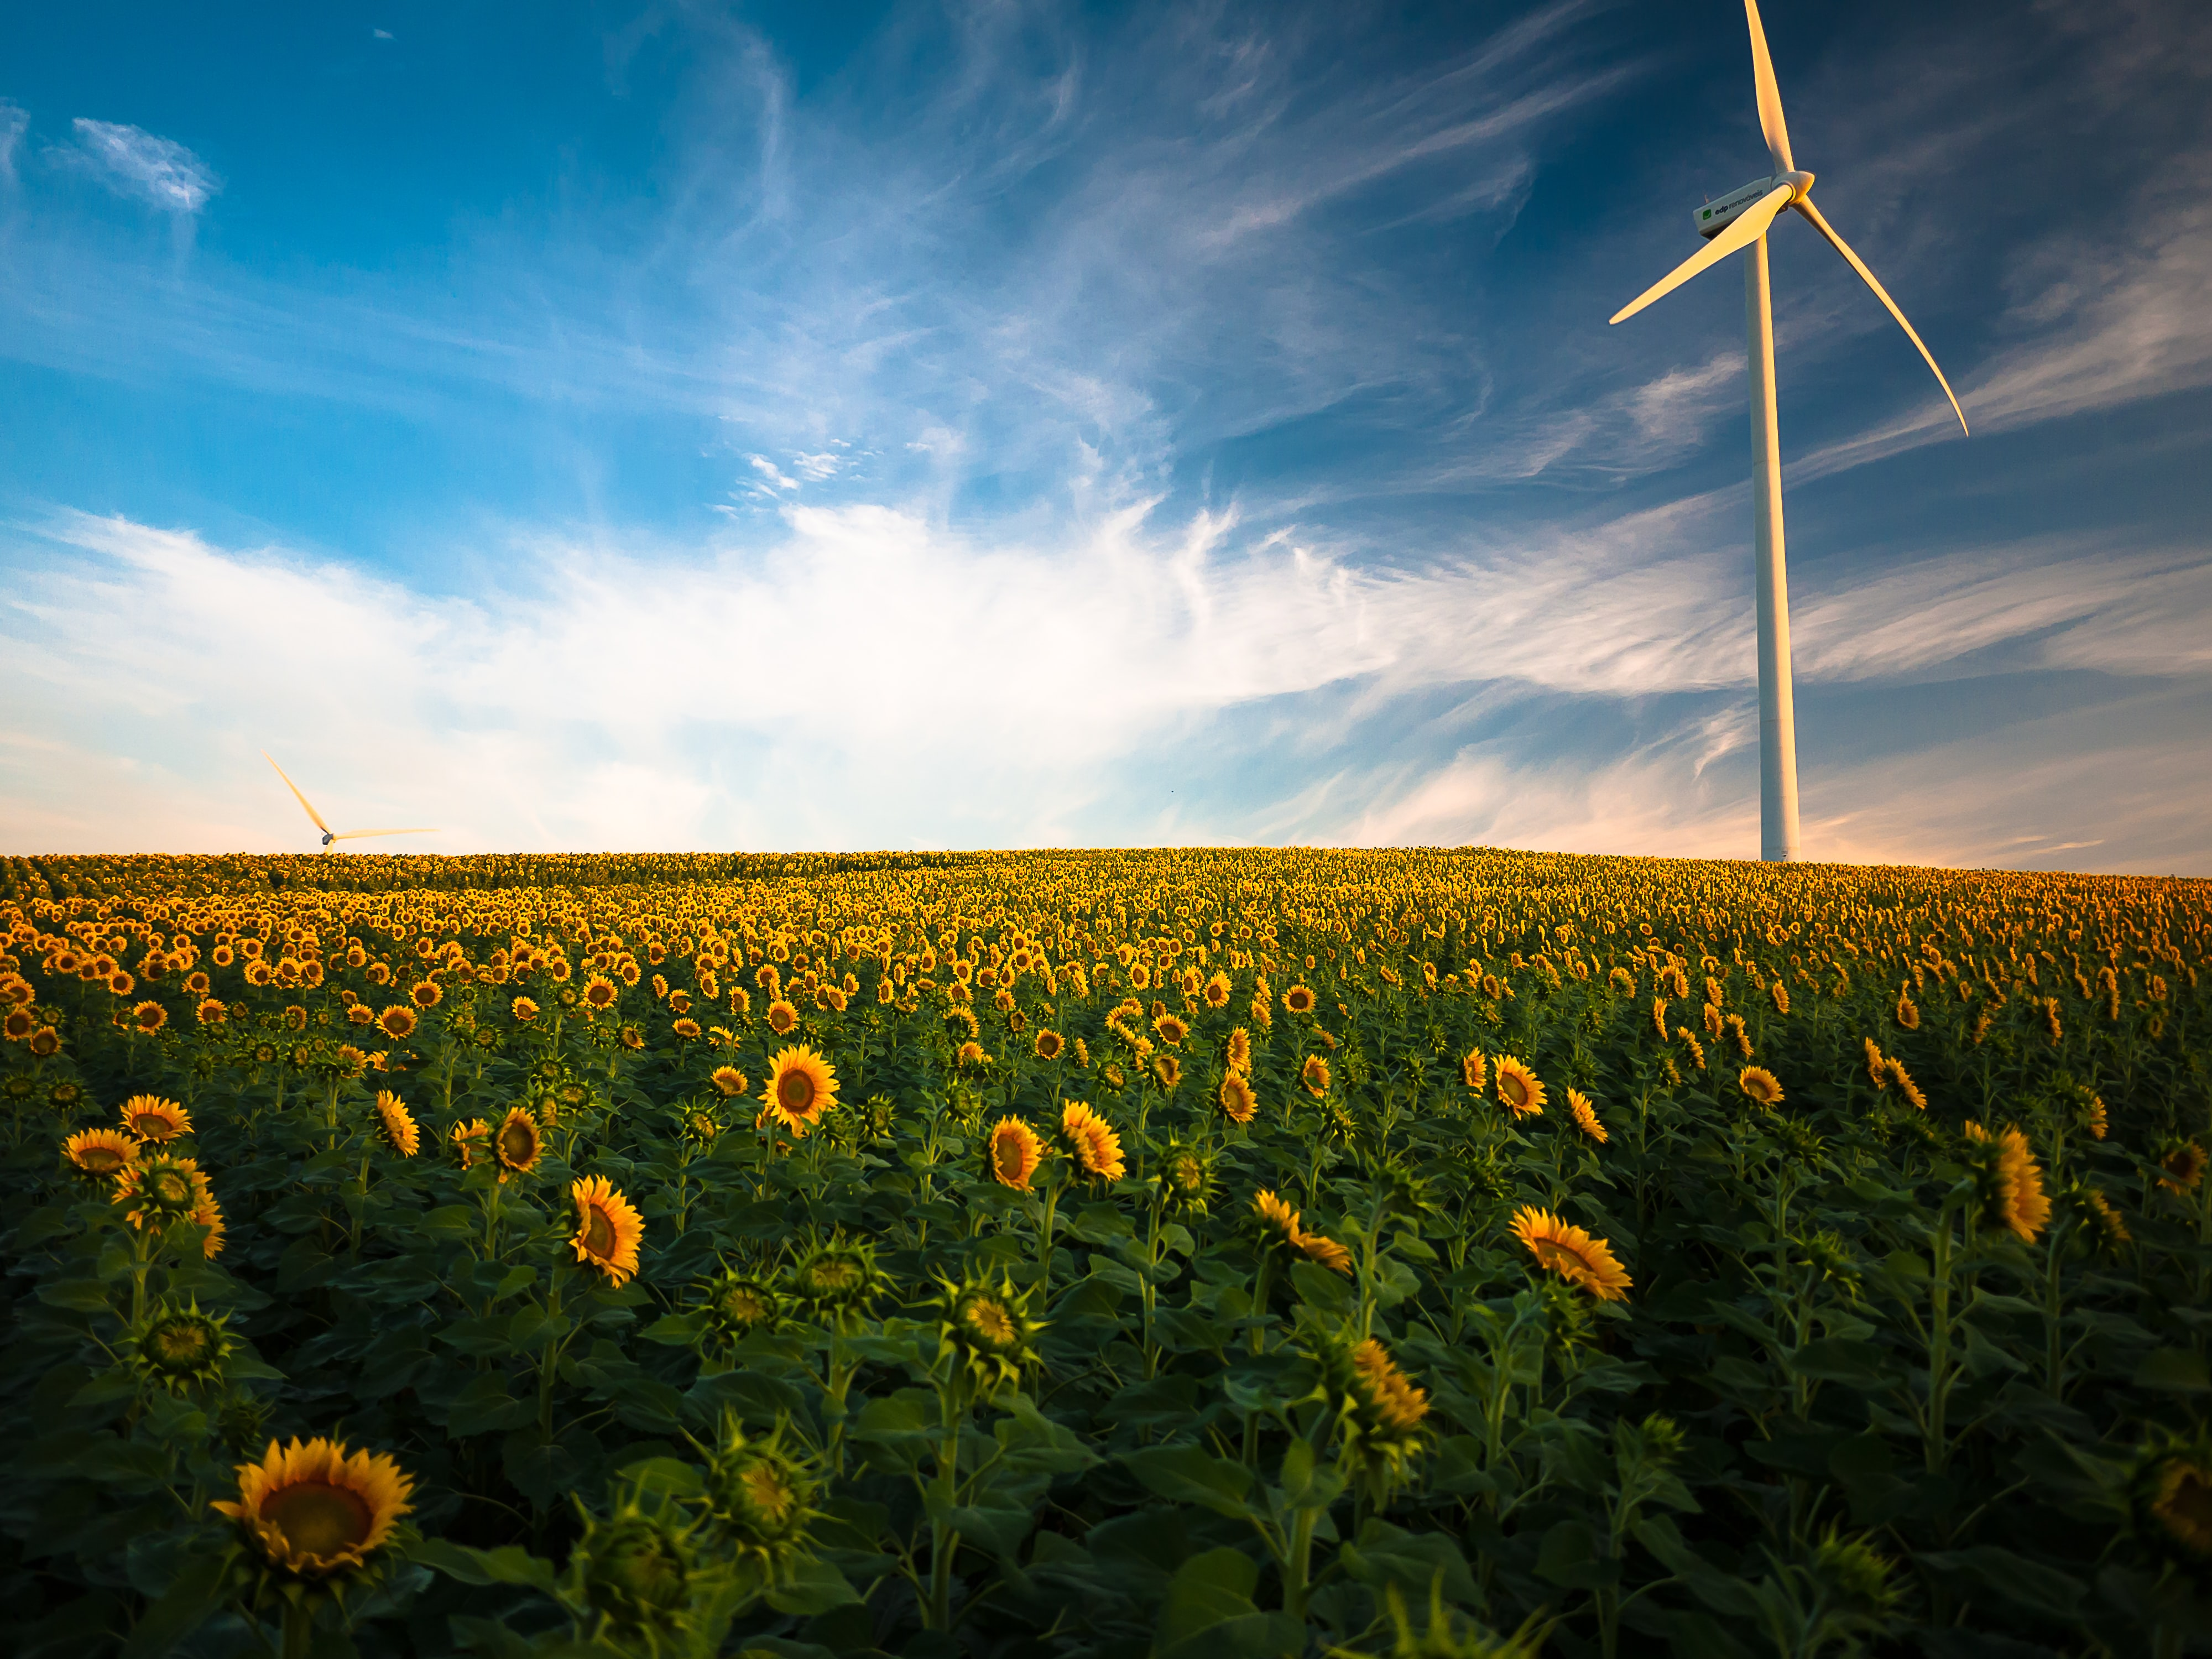 The Role of Energy Supply in Tackling the Climate Crisis